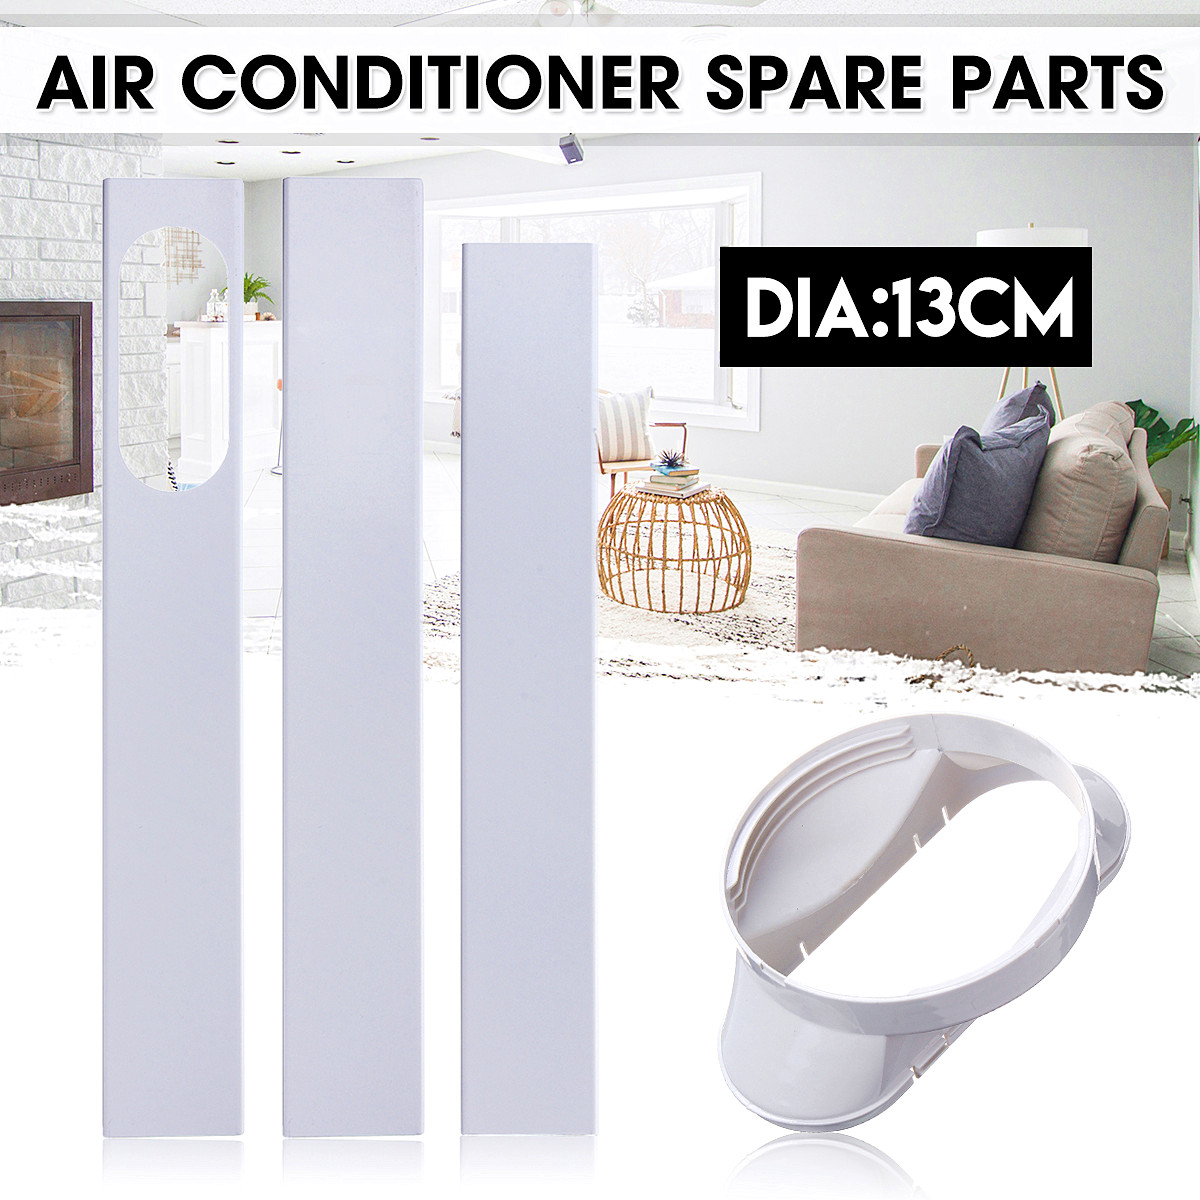 Window Slide Kit Plate Adjustable+Window Adaptor For Portable Air Conditioner